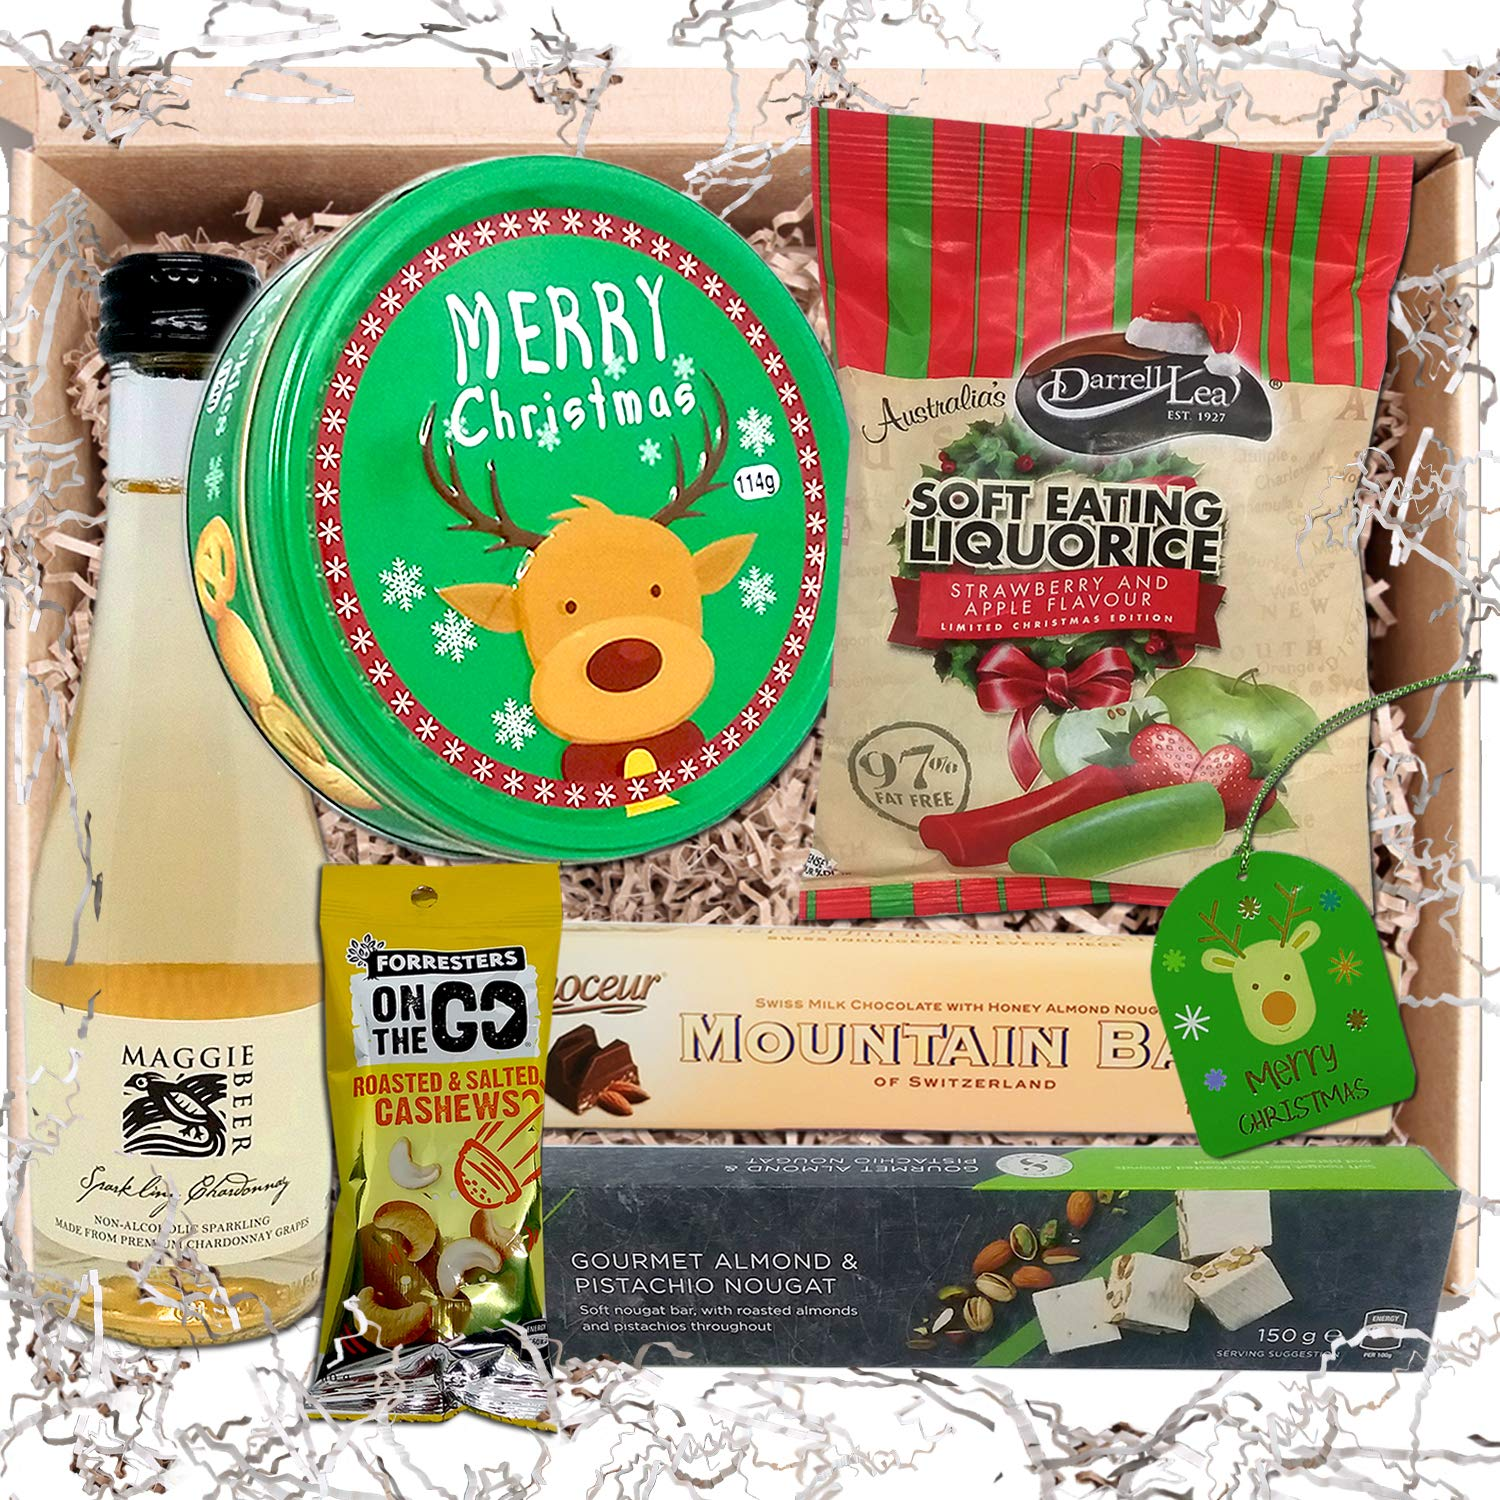 Food and Wine Xmas Hamper – Wine, Licorice, Nougat, Shortbread Biscuits,  Chocolate & Cashews